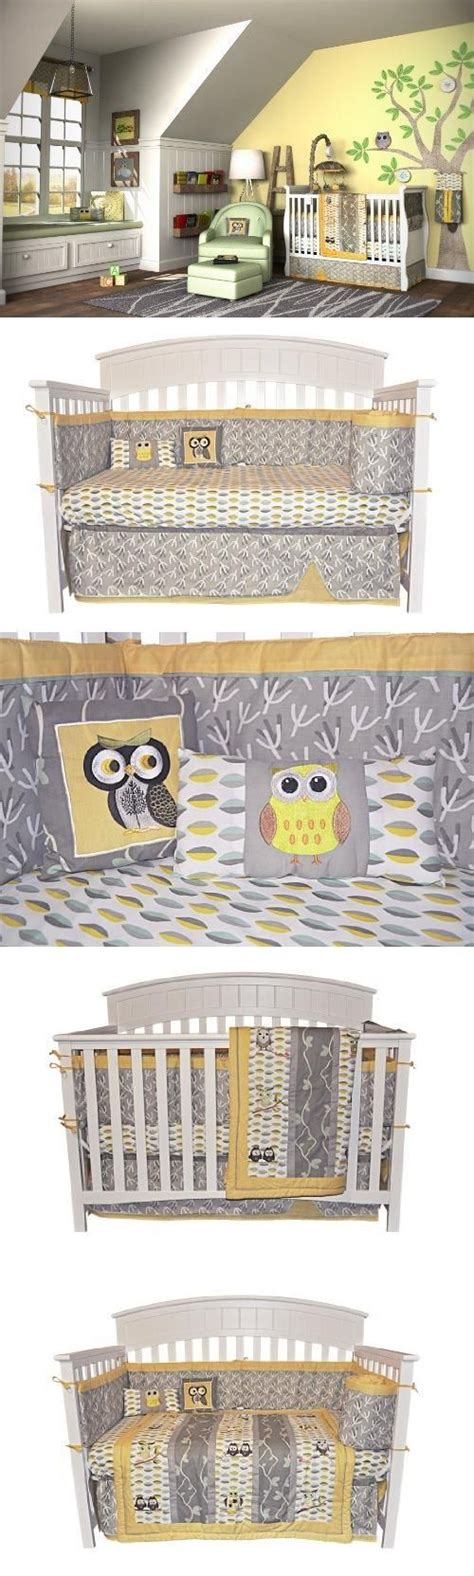 Neutral Baby Bedding With Owls 25 Best Ideas About Neutral Crib Bedding On